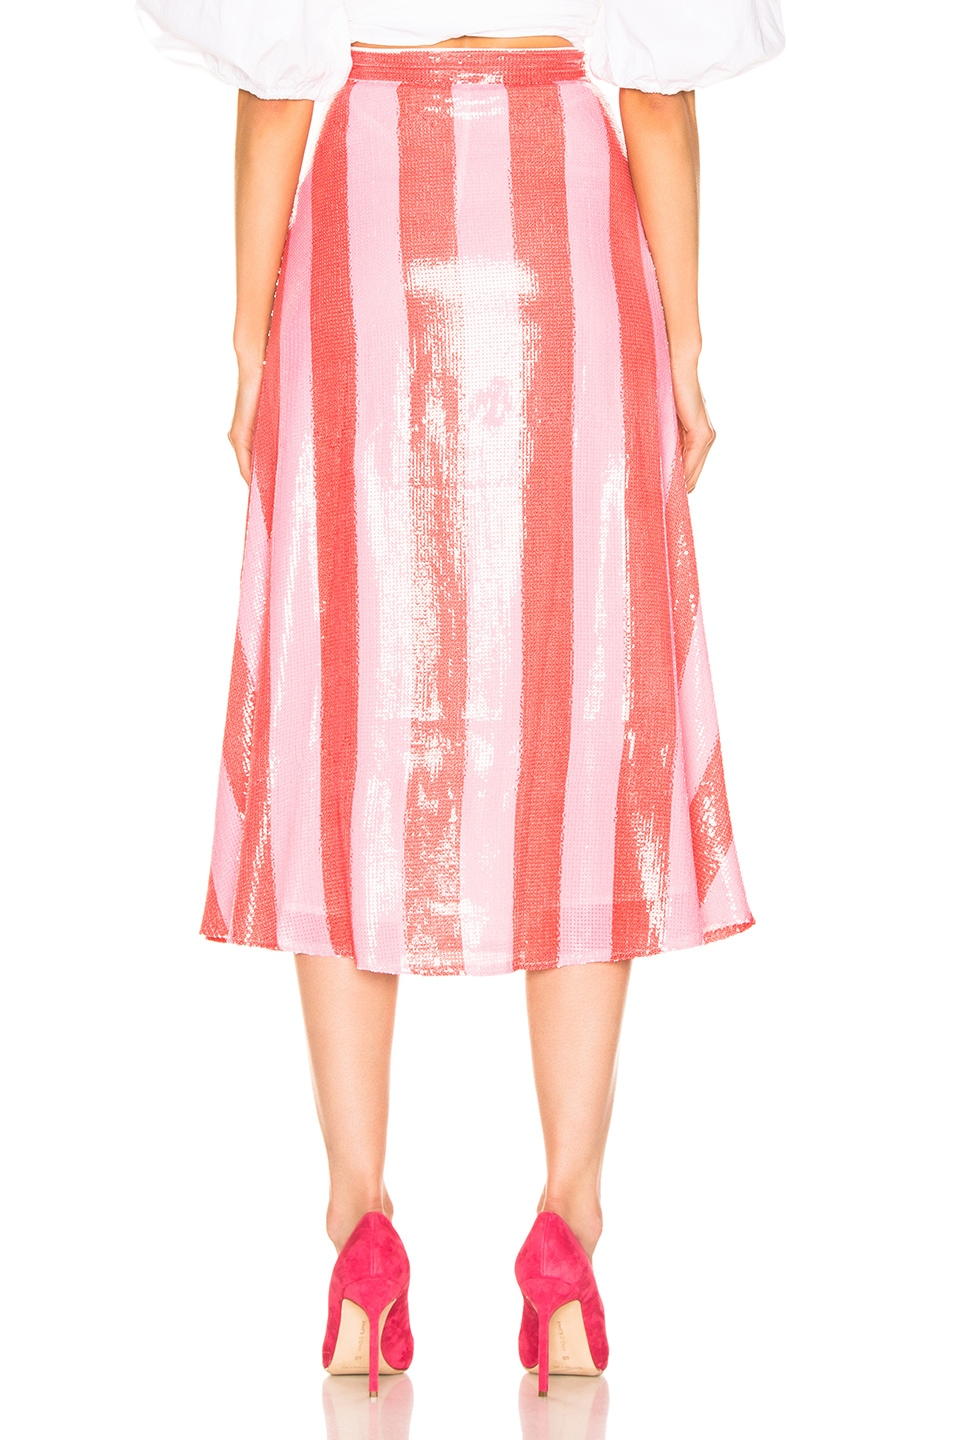 Image 3 of Olivia Rubin Penelope Skirt in Red & Pink